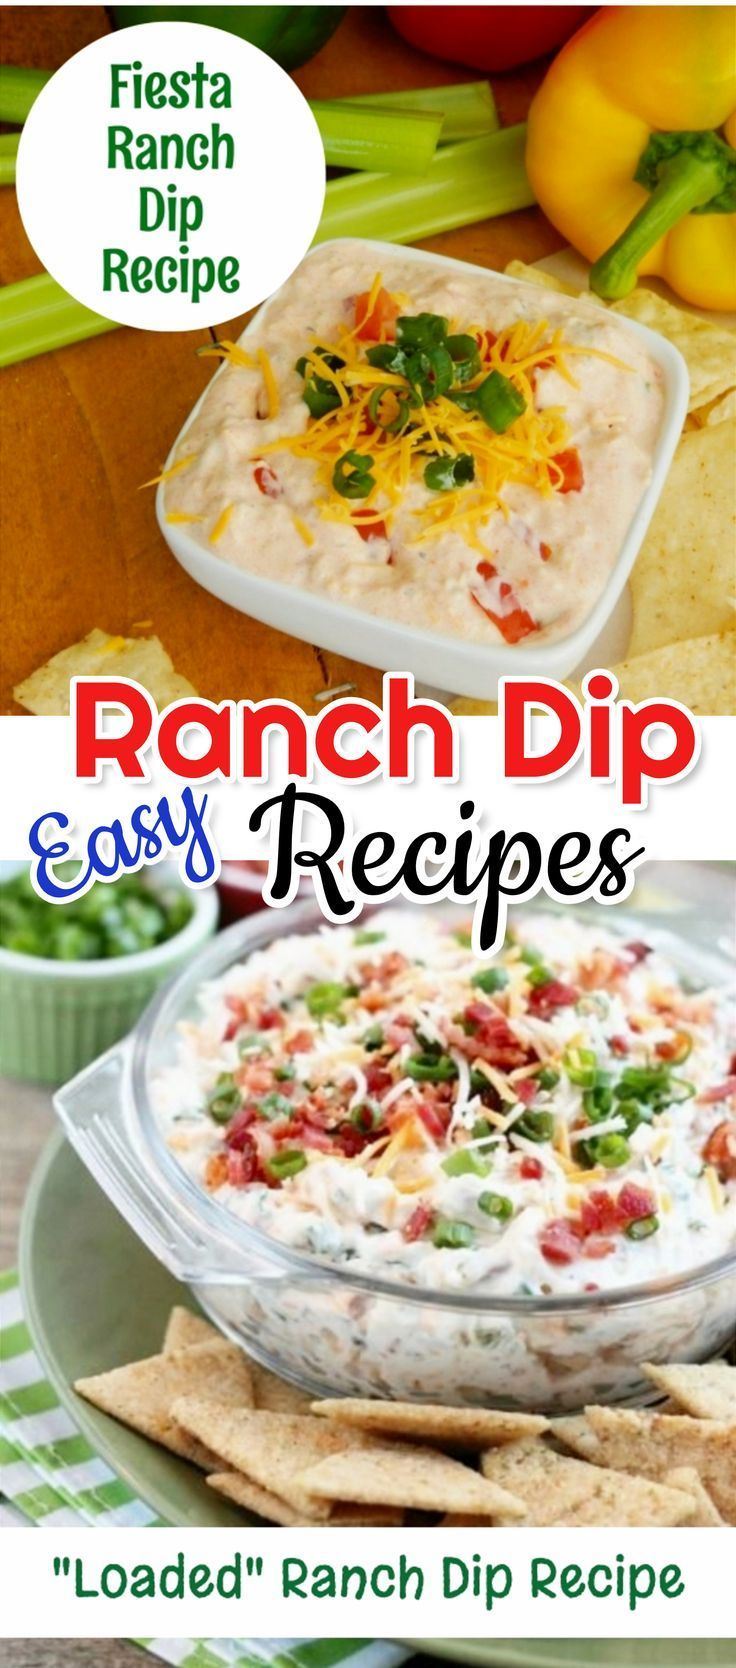 Easy ranch dip recipes! Bacon ranch dip, homemade ranch dip, jalapeno ranch dip, fiesta ranch dip, buffalo chicken ranch dip, spicy ranch dip recipe and more.